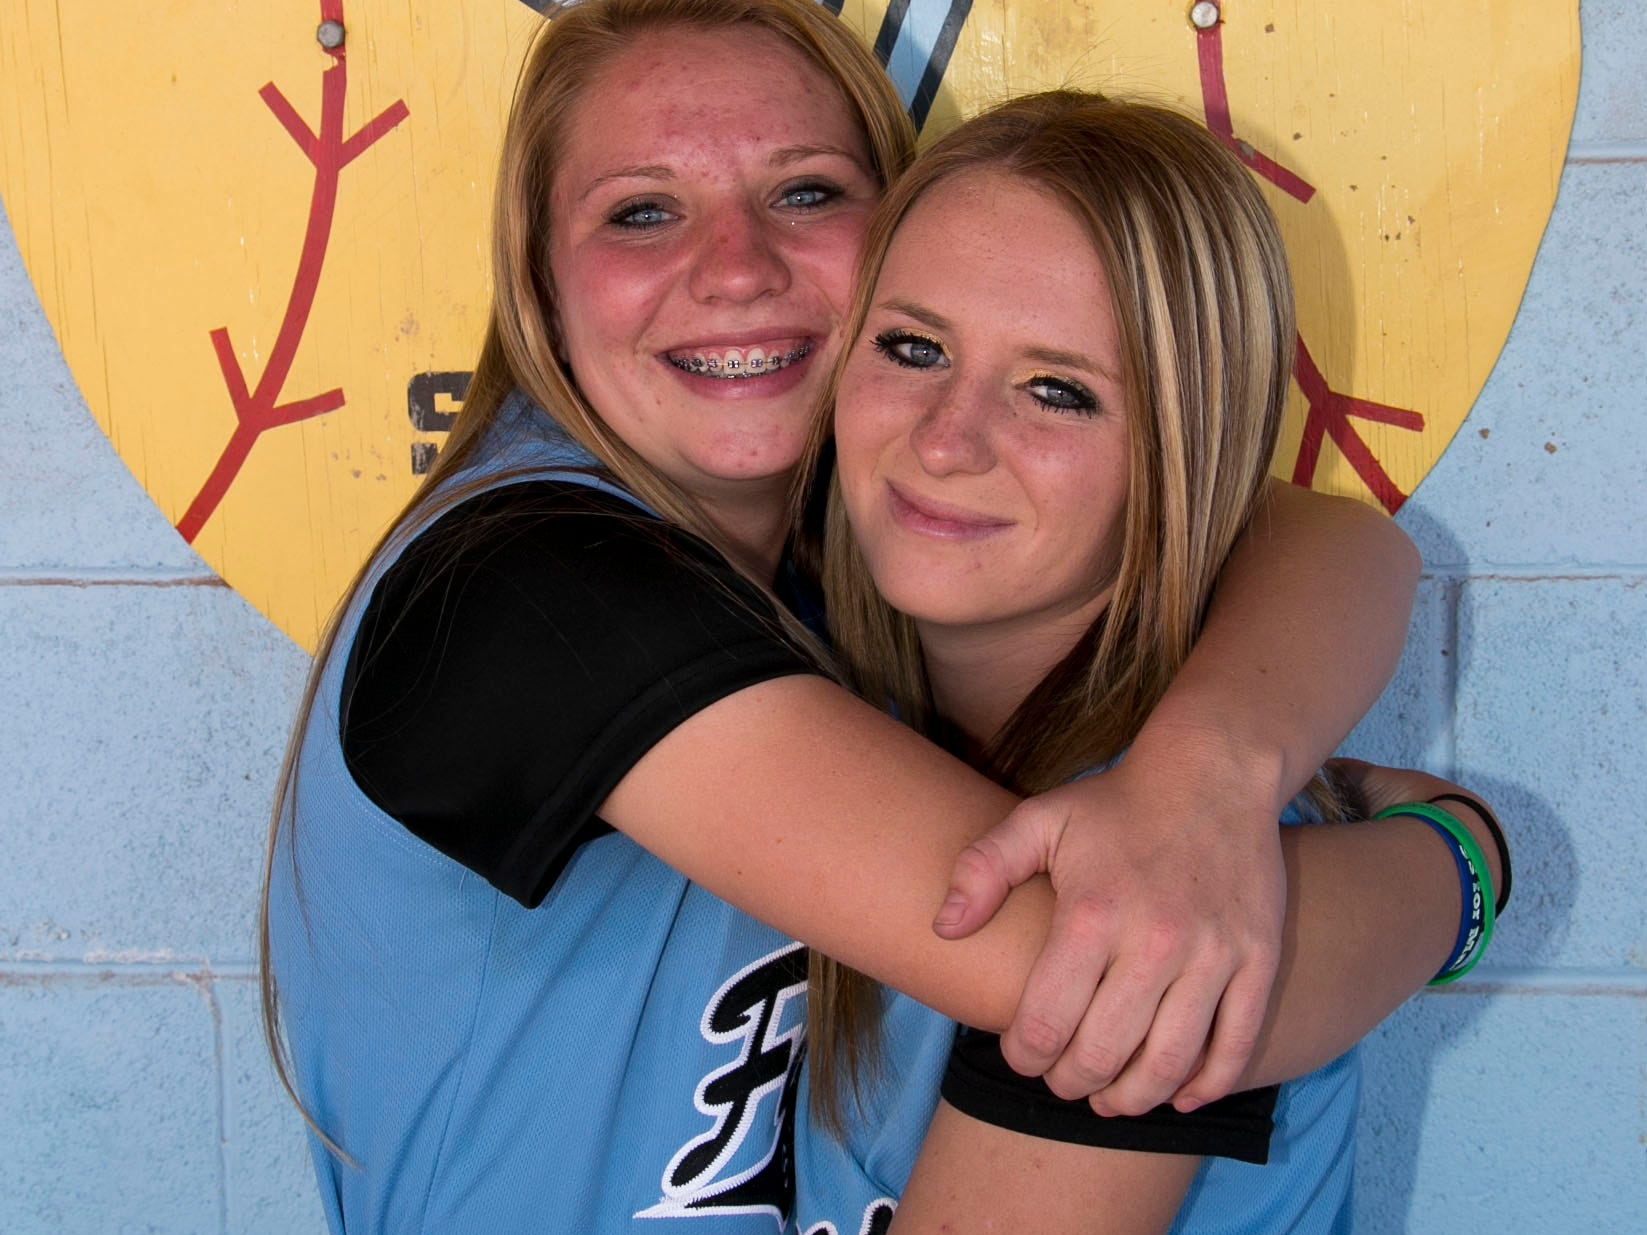 Canyon View's Kylee Delange and Kaitlyn Delange are starters on the varsity softball team that can clinch the No. 2 seed in Region 9 with a victory over Pine View on Friday.